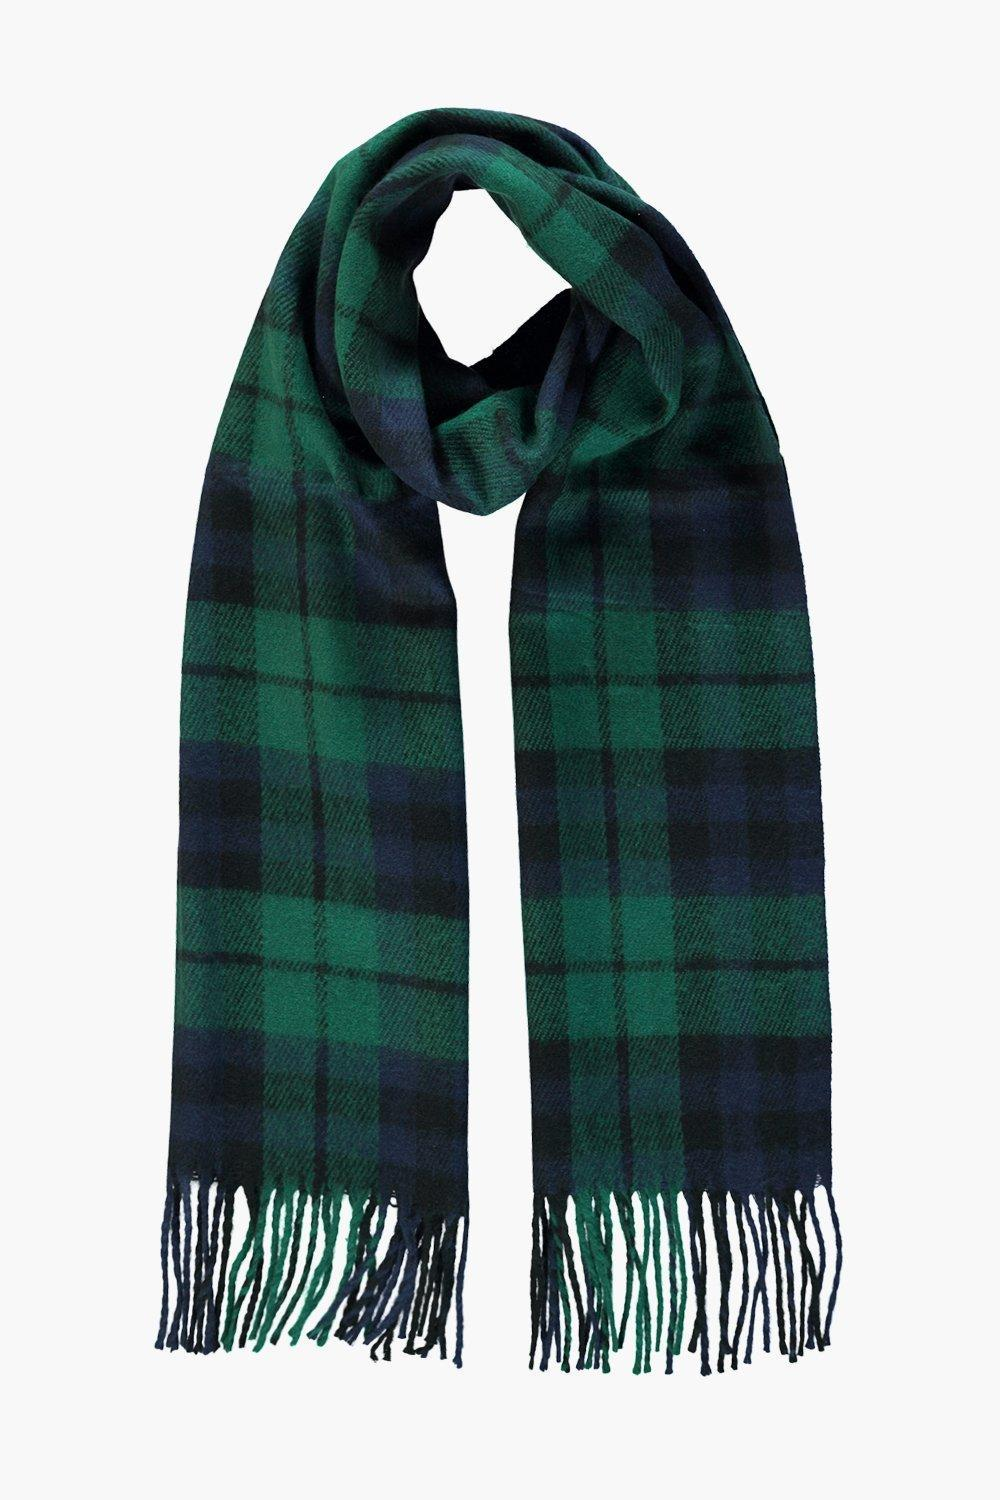 Bottle Green Brushed Check Scarf Green - predominant colour: emerald green; occasions: casual; type of pattern: heavy; style: regular; size: standard; material: knits; embellishment: fringing; pattern: checked/gingham; multicoloured: multicoloured; season: a/w 2016; wardrobe: highlight